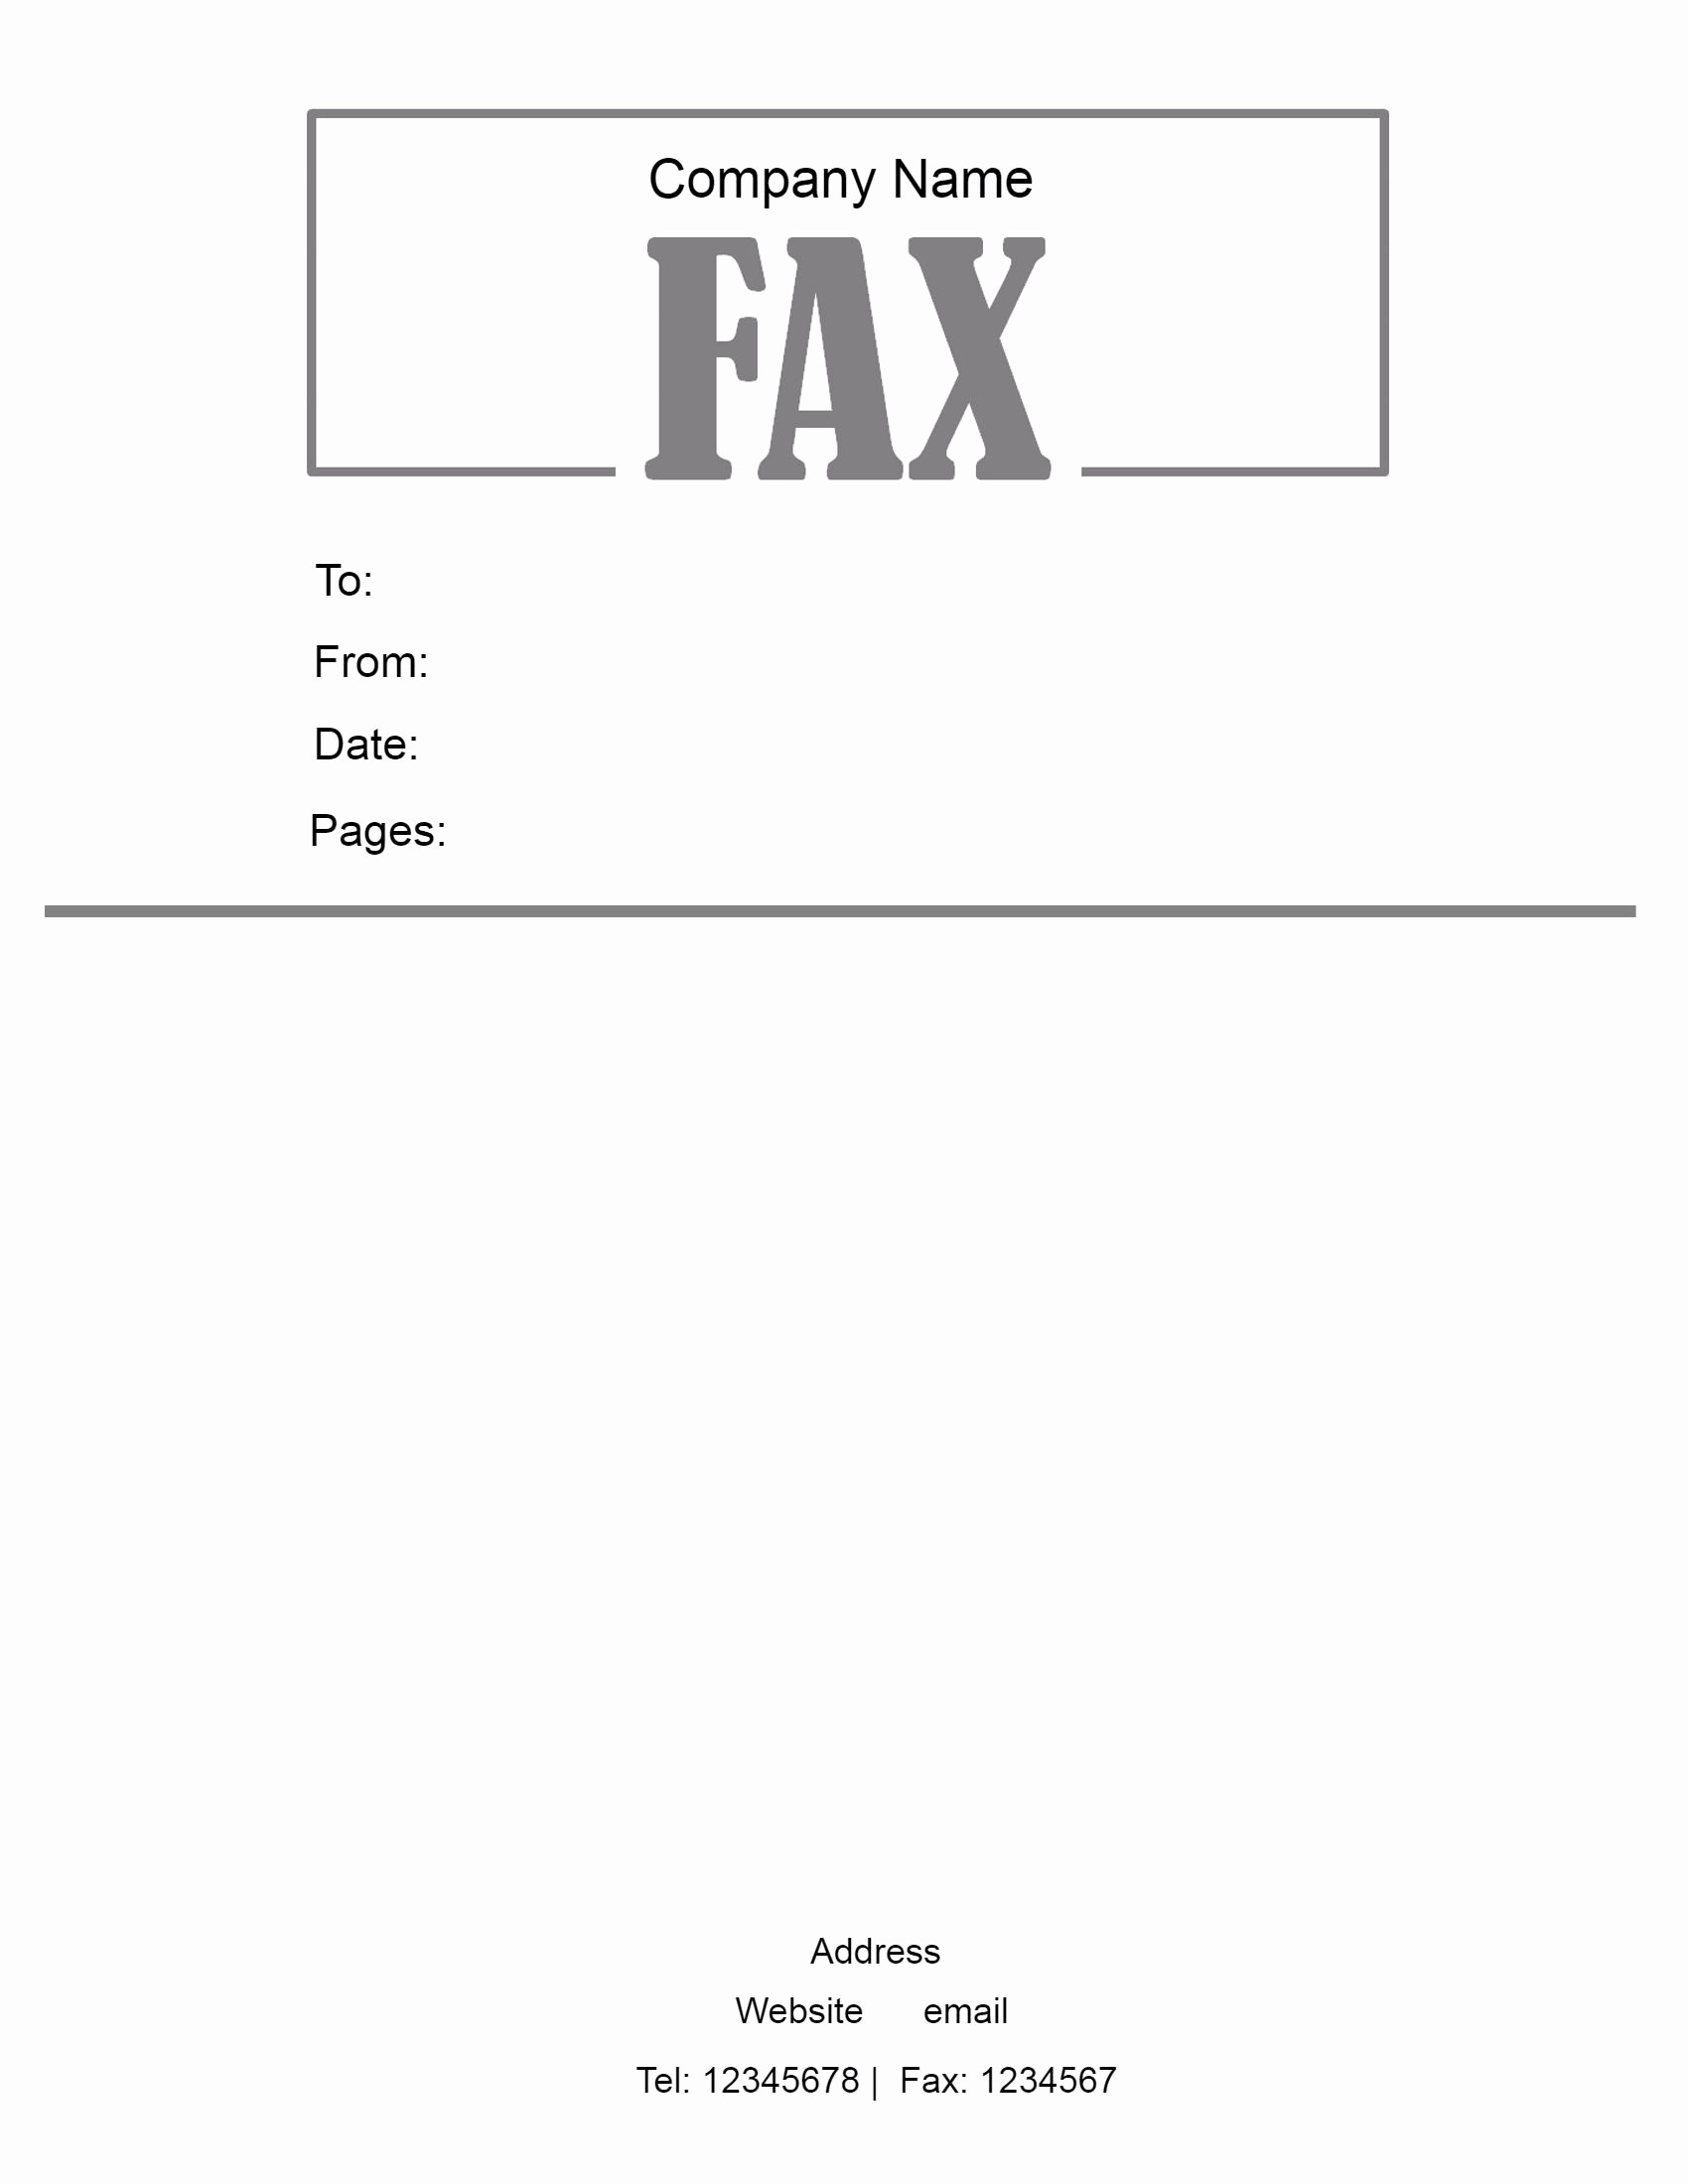 Cover Page for A Fax Unique Free Fax Cover Sheet Template